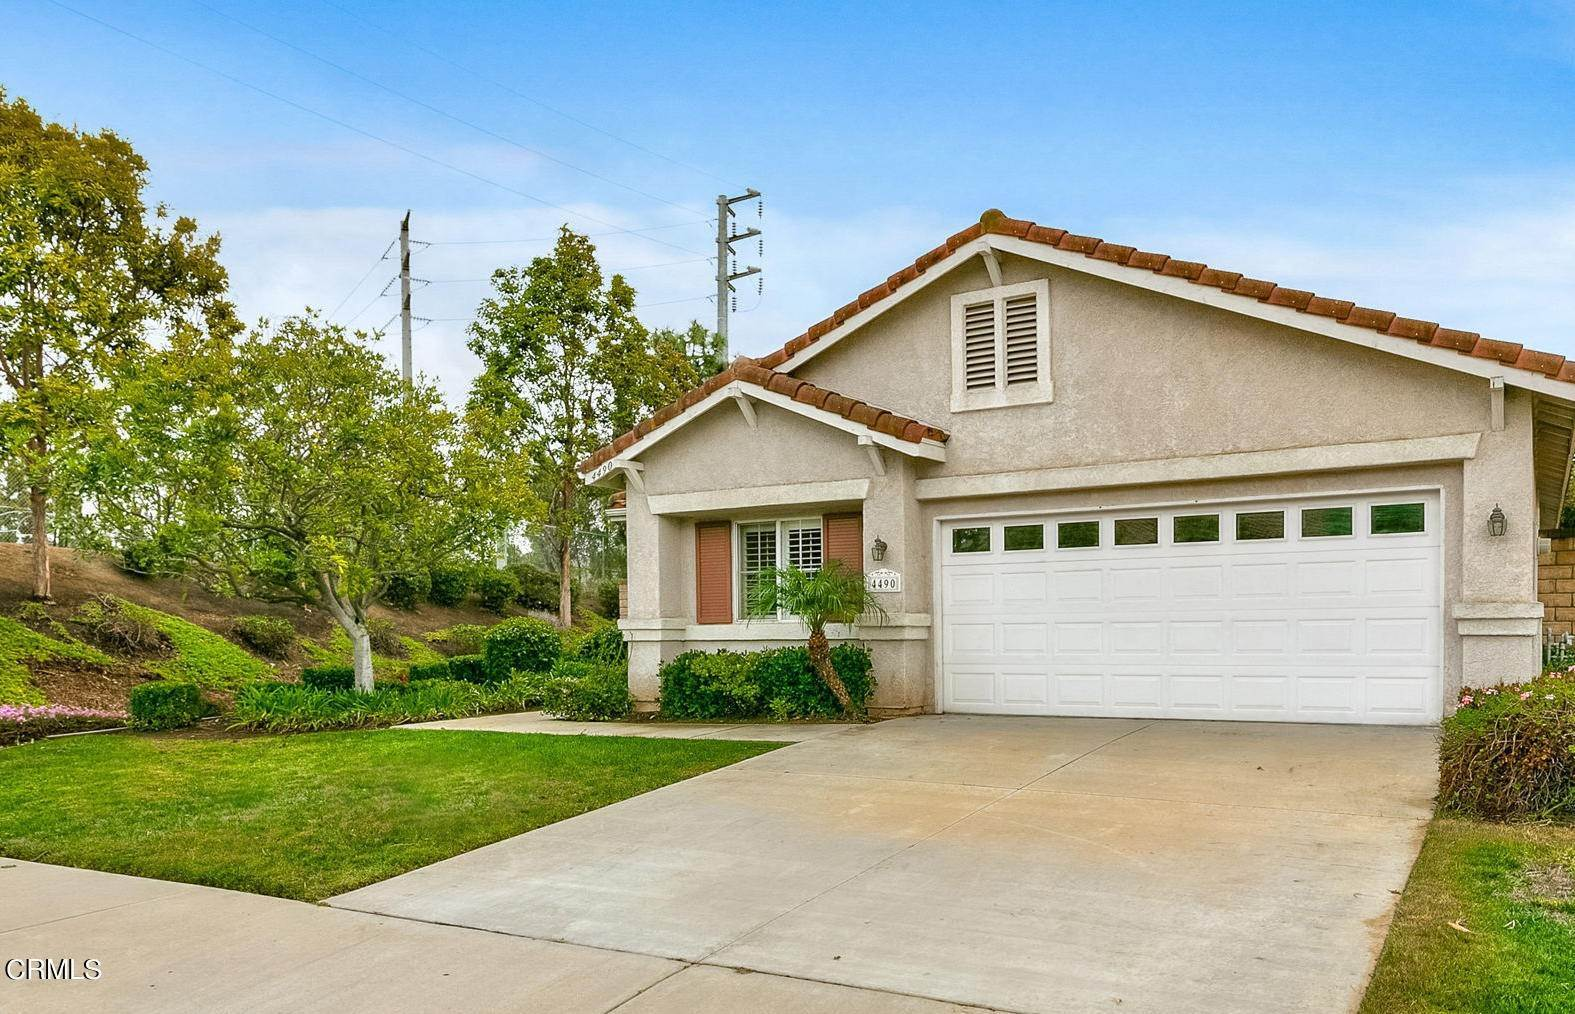 3. Single Family Homes for Sale at 4490 El Corazon Court Camarillo, California 93012 United States